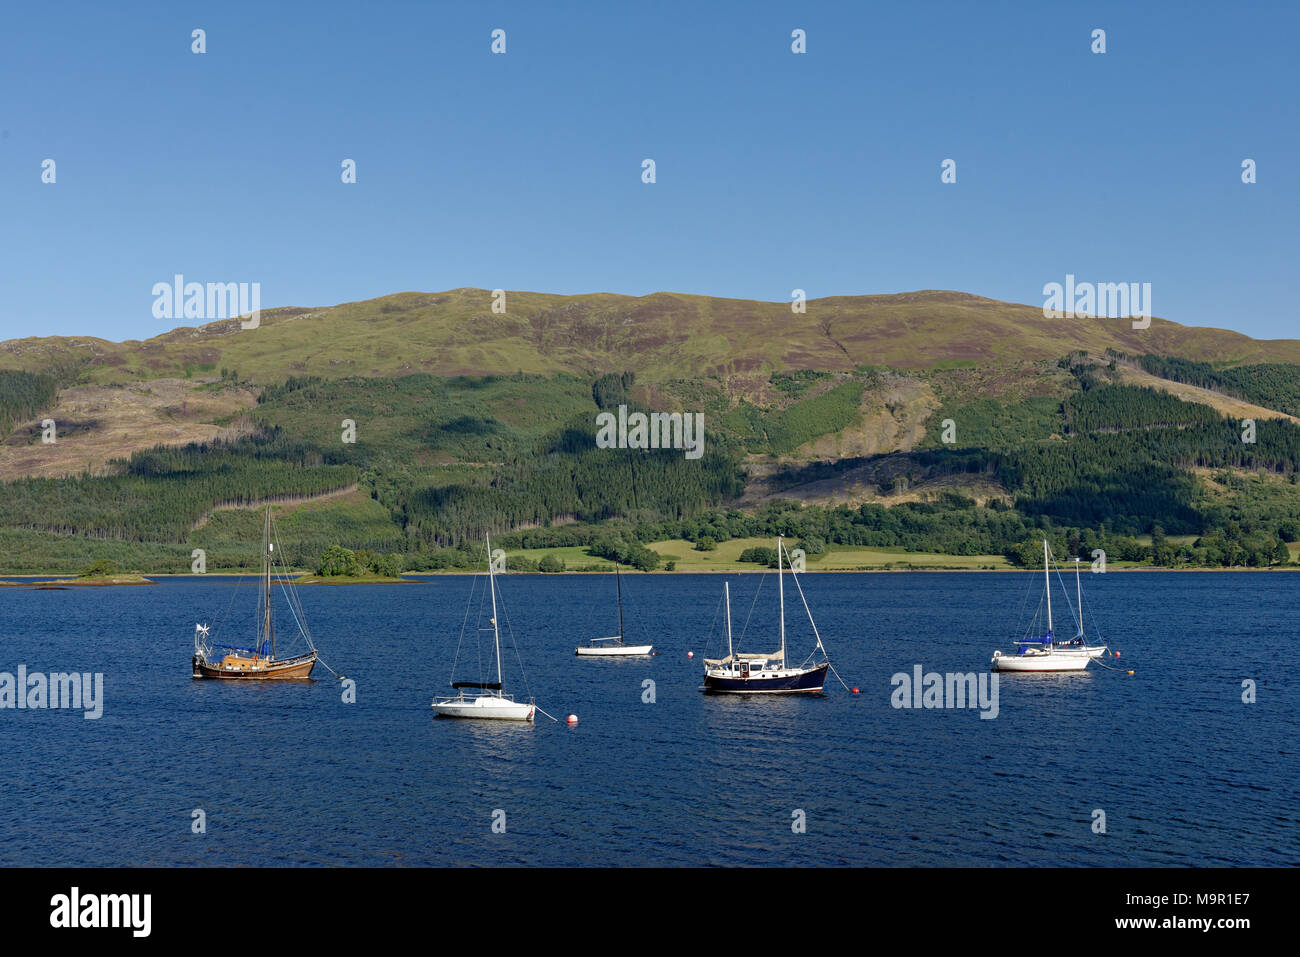 Loch Leven Harbour, Ballachulish near Glencoe, Highlands, Scotland, United Kingdom - Stock Image